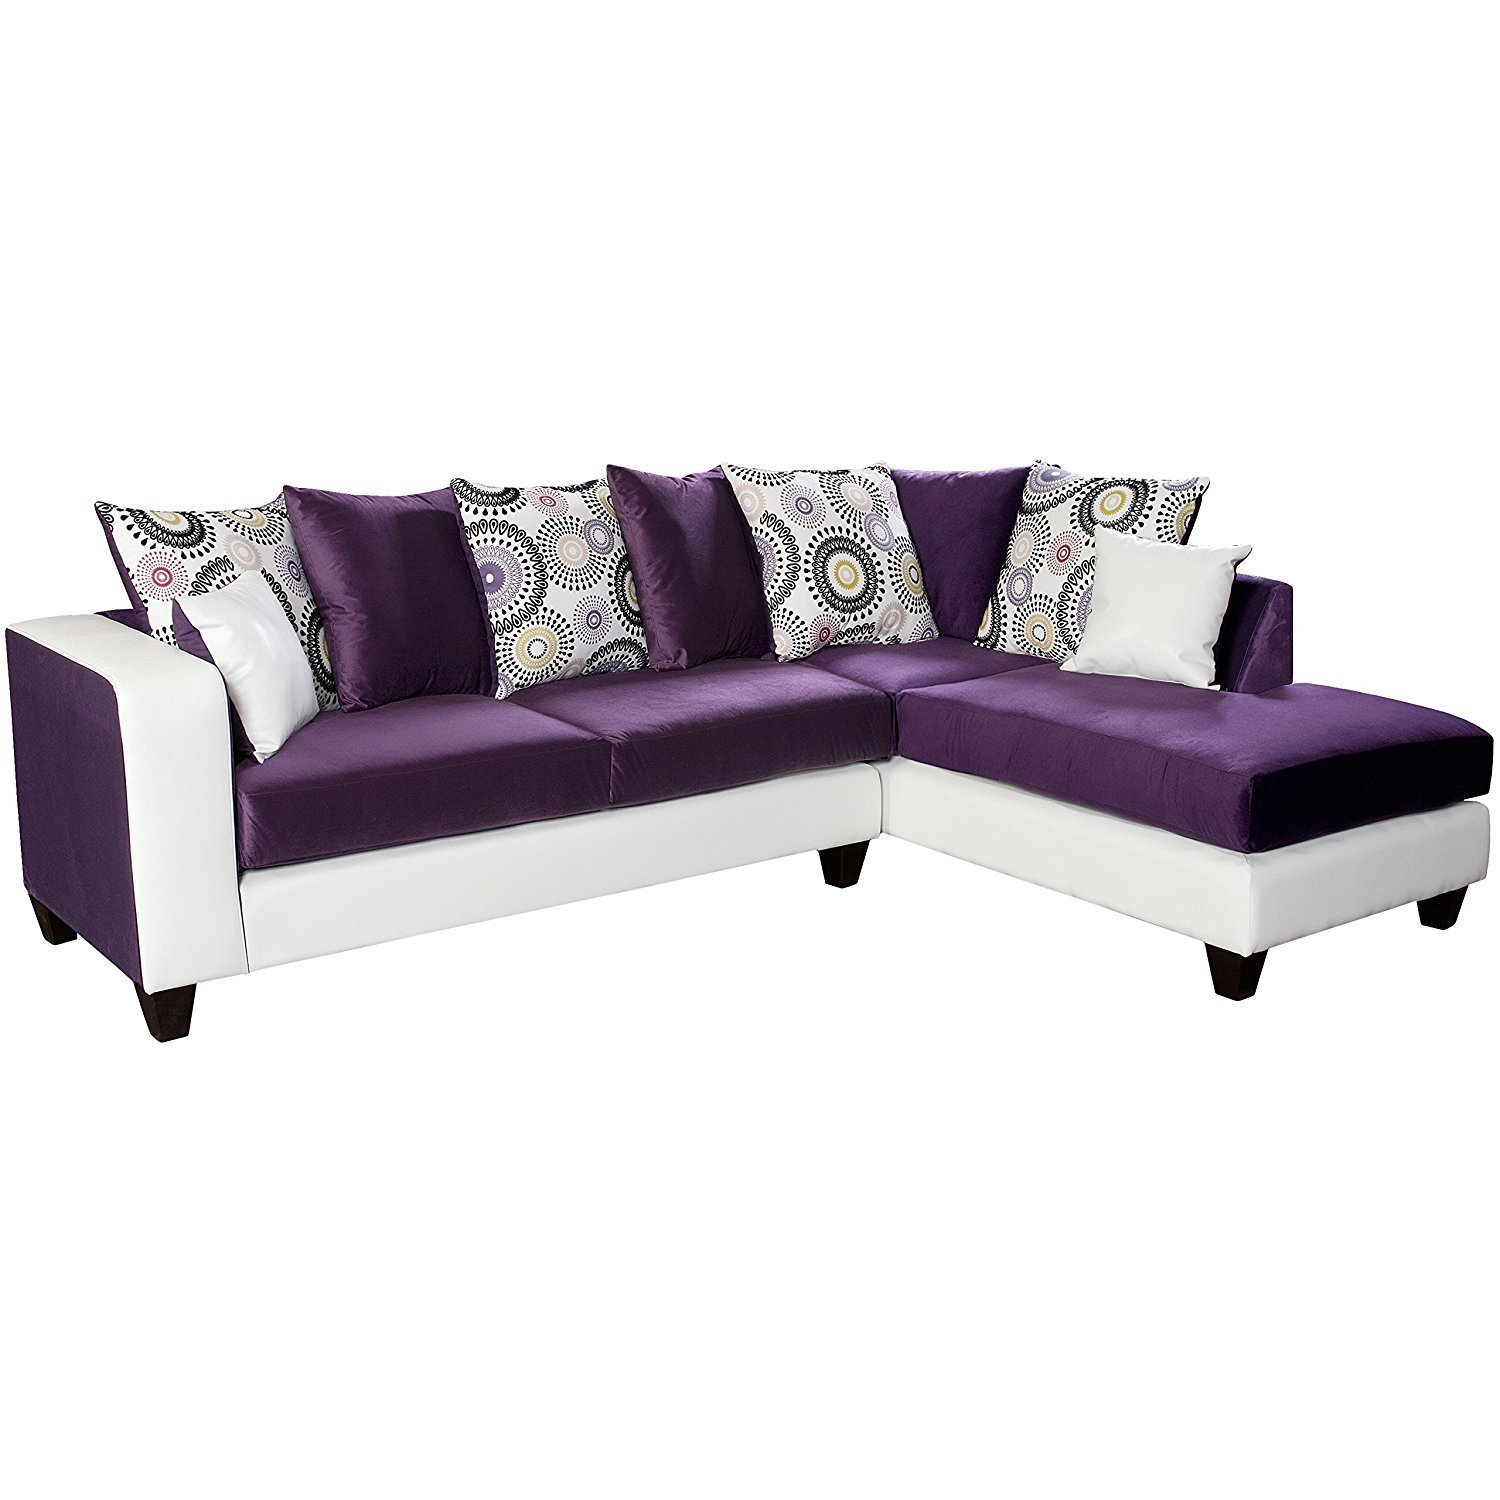 Riverstone implosion purple velvet sectional home for Purple sectional sofa chaise